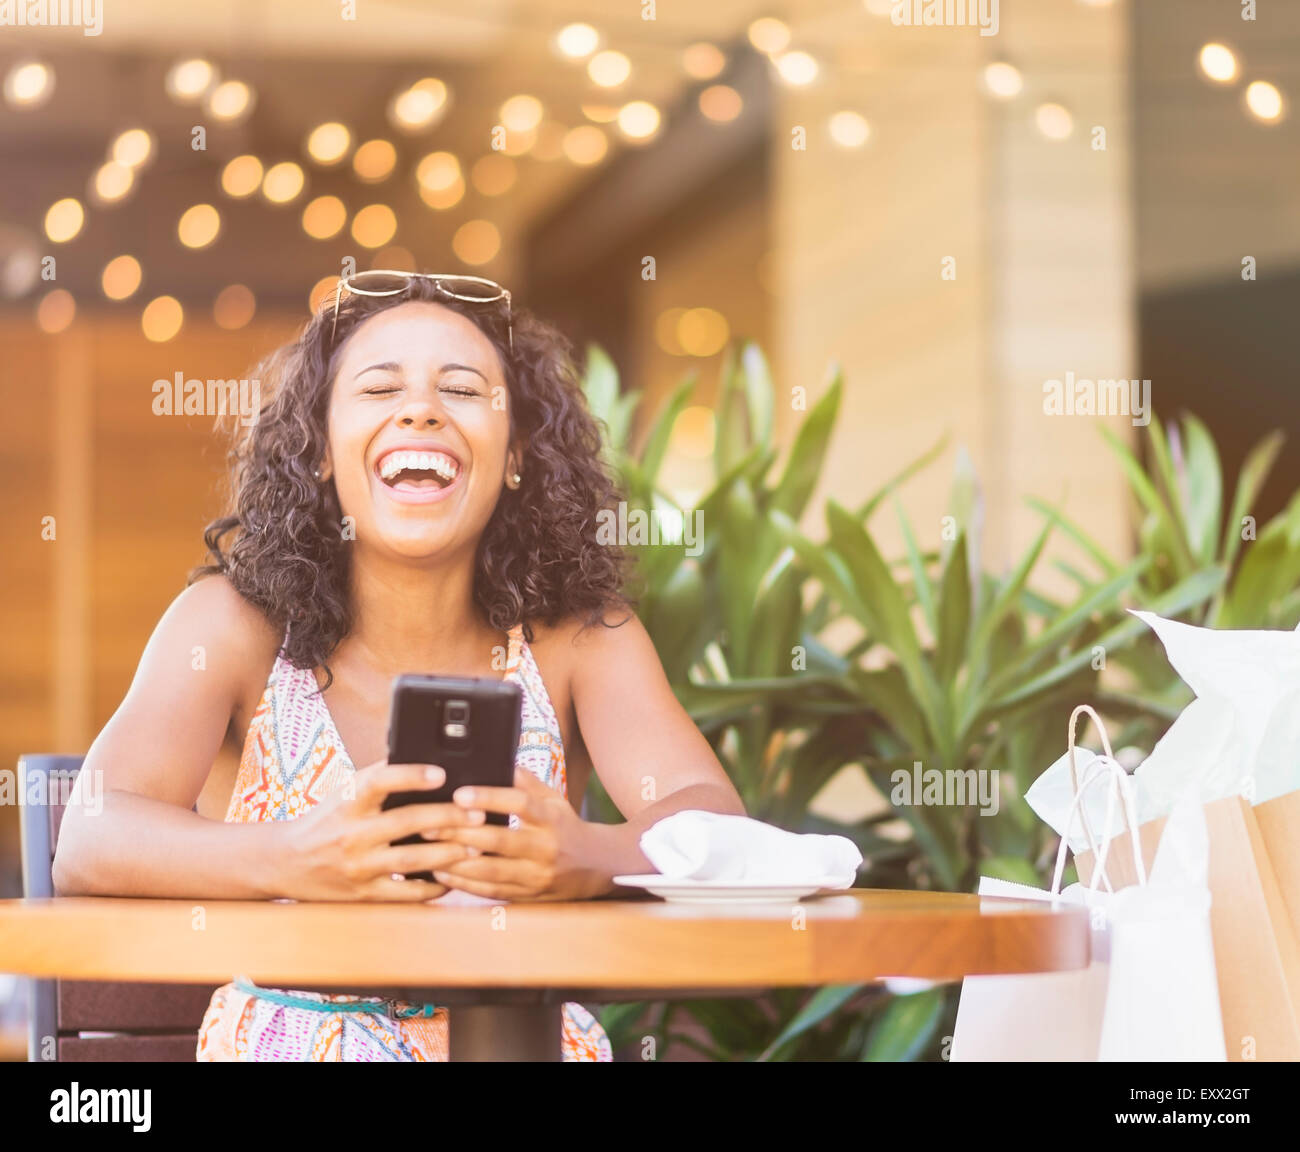 Woman using phone in cafe - Stock Image